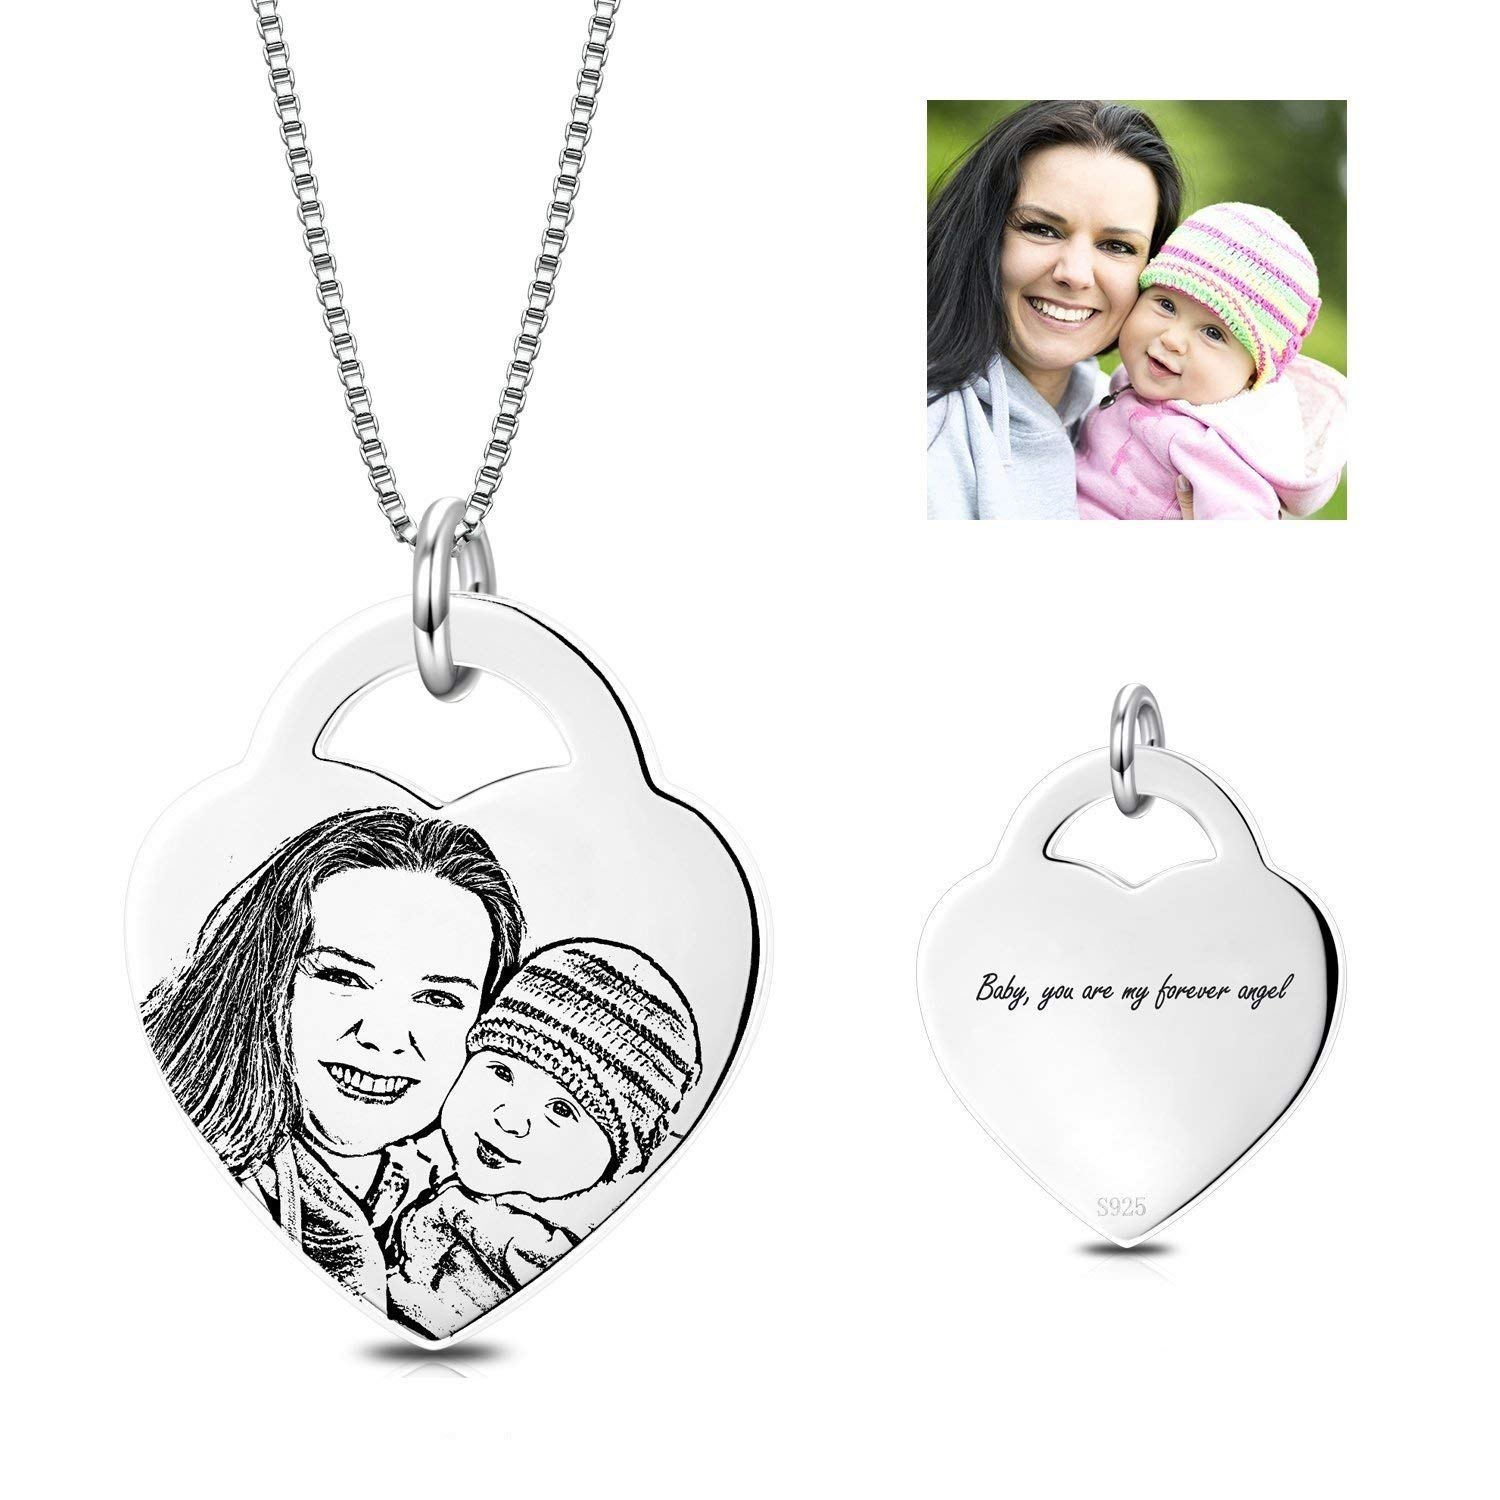 VERSUSWOLF Personalized Photo Cutom Necklace Sterling Silver Heart Engraved Pendant